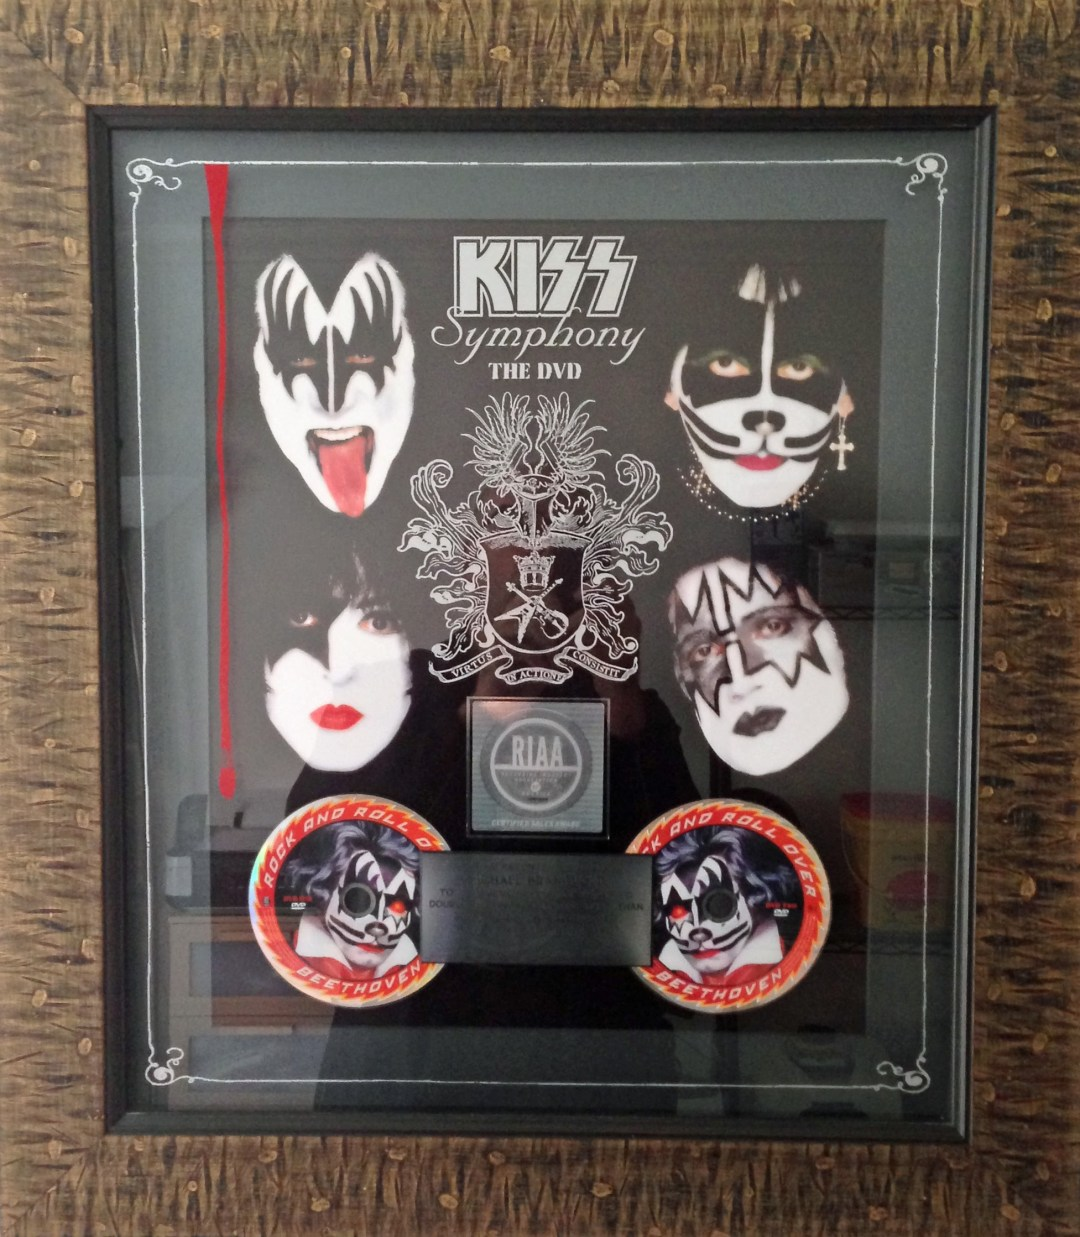 KISS Symphony The DVD RIAA Award